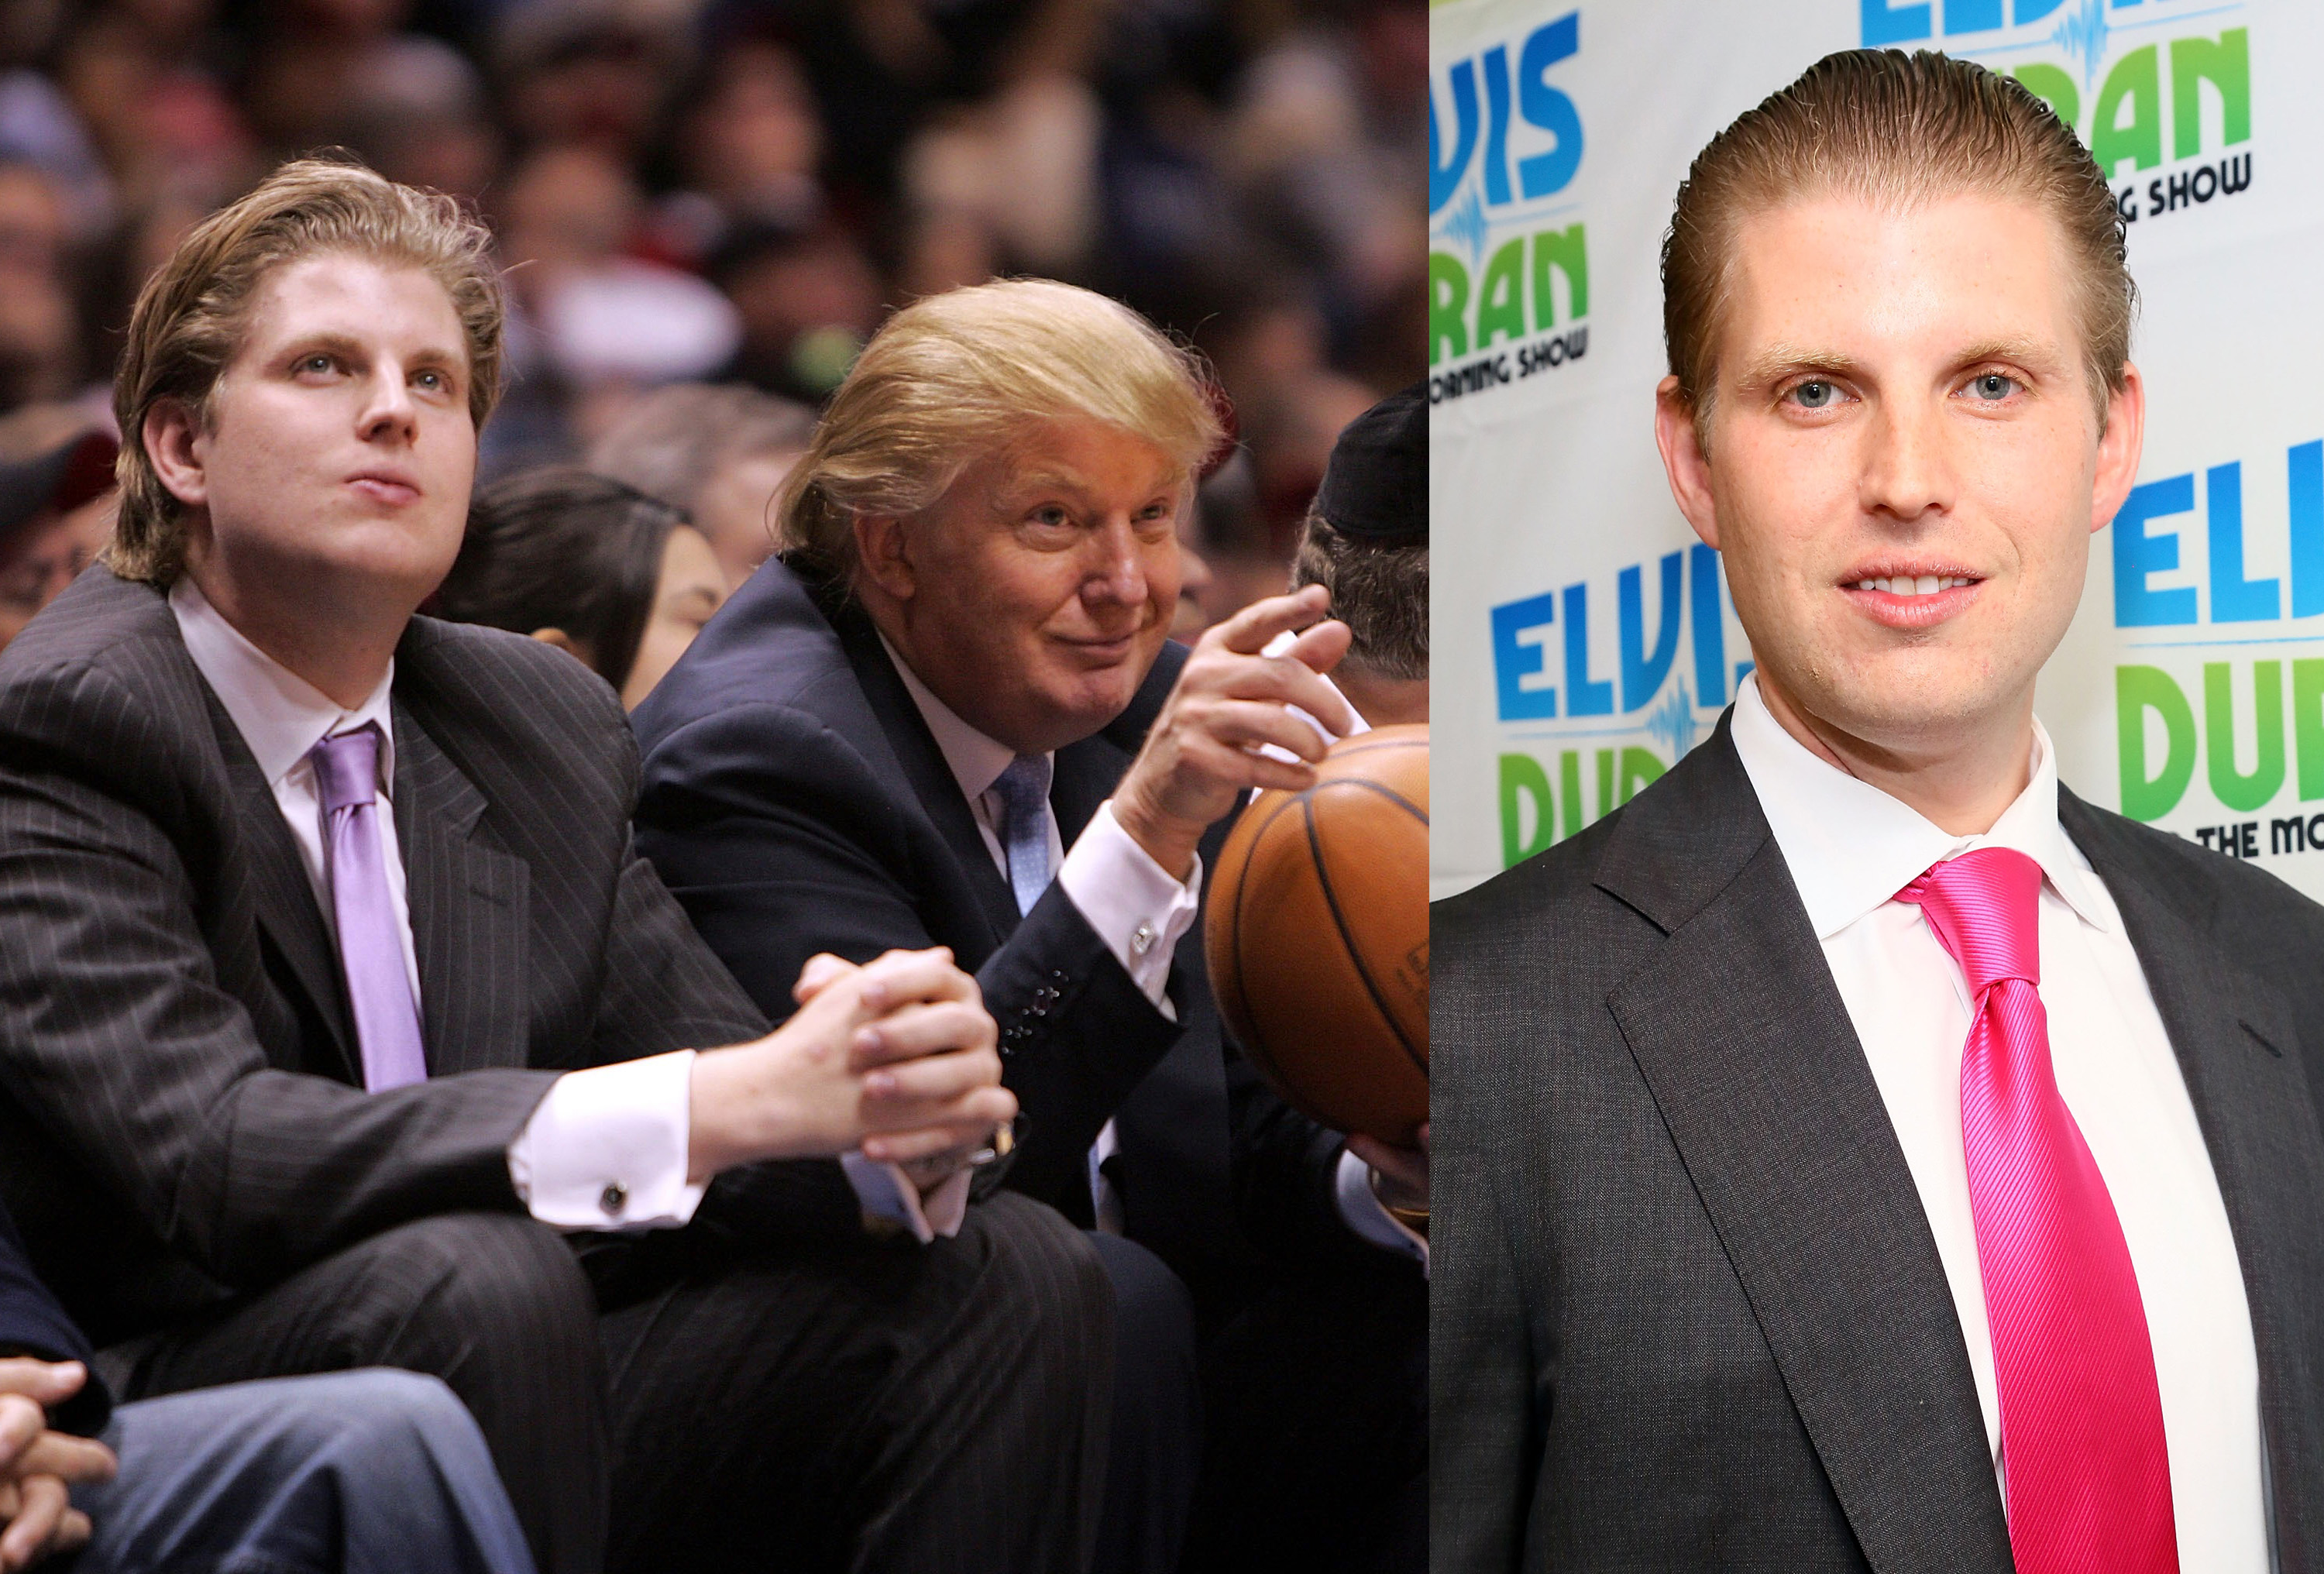 <i>Left:</i> Eric Trump and Donald Trump in 2007; <i>Right:</i> Eric Trump in New York City in October 2013.